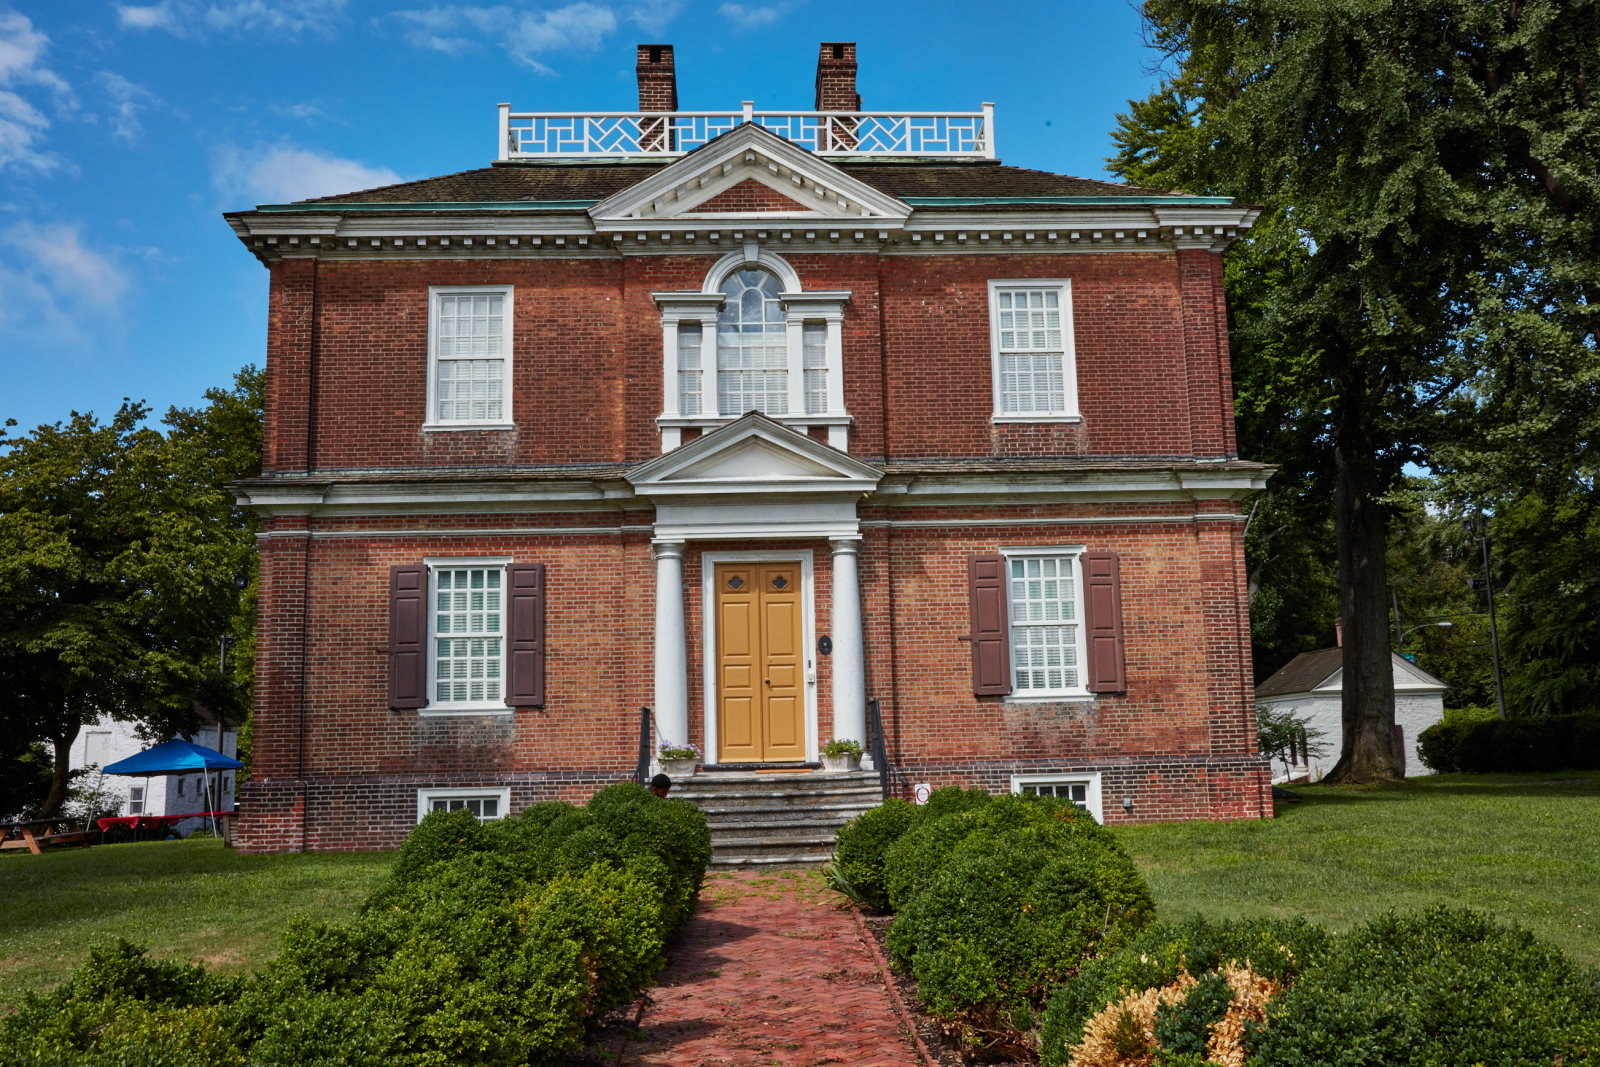 Photography image - Loading 04-08-18_WoodfordMansion-PeachFestival_001.png